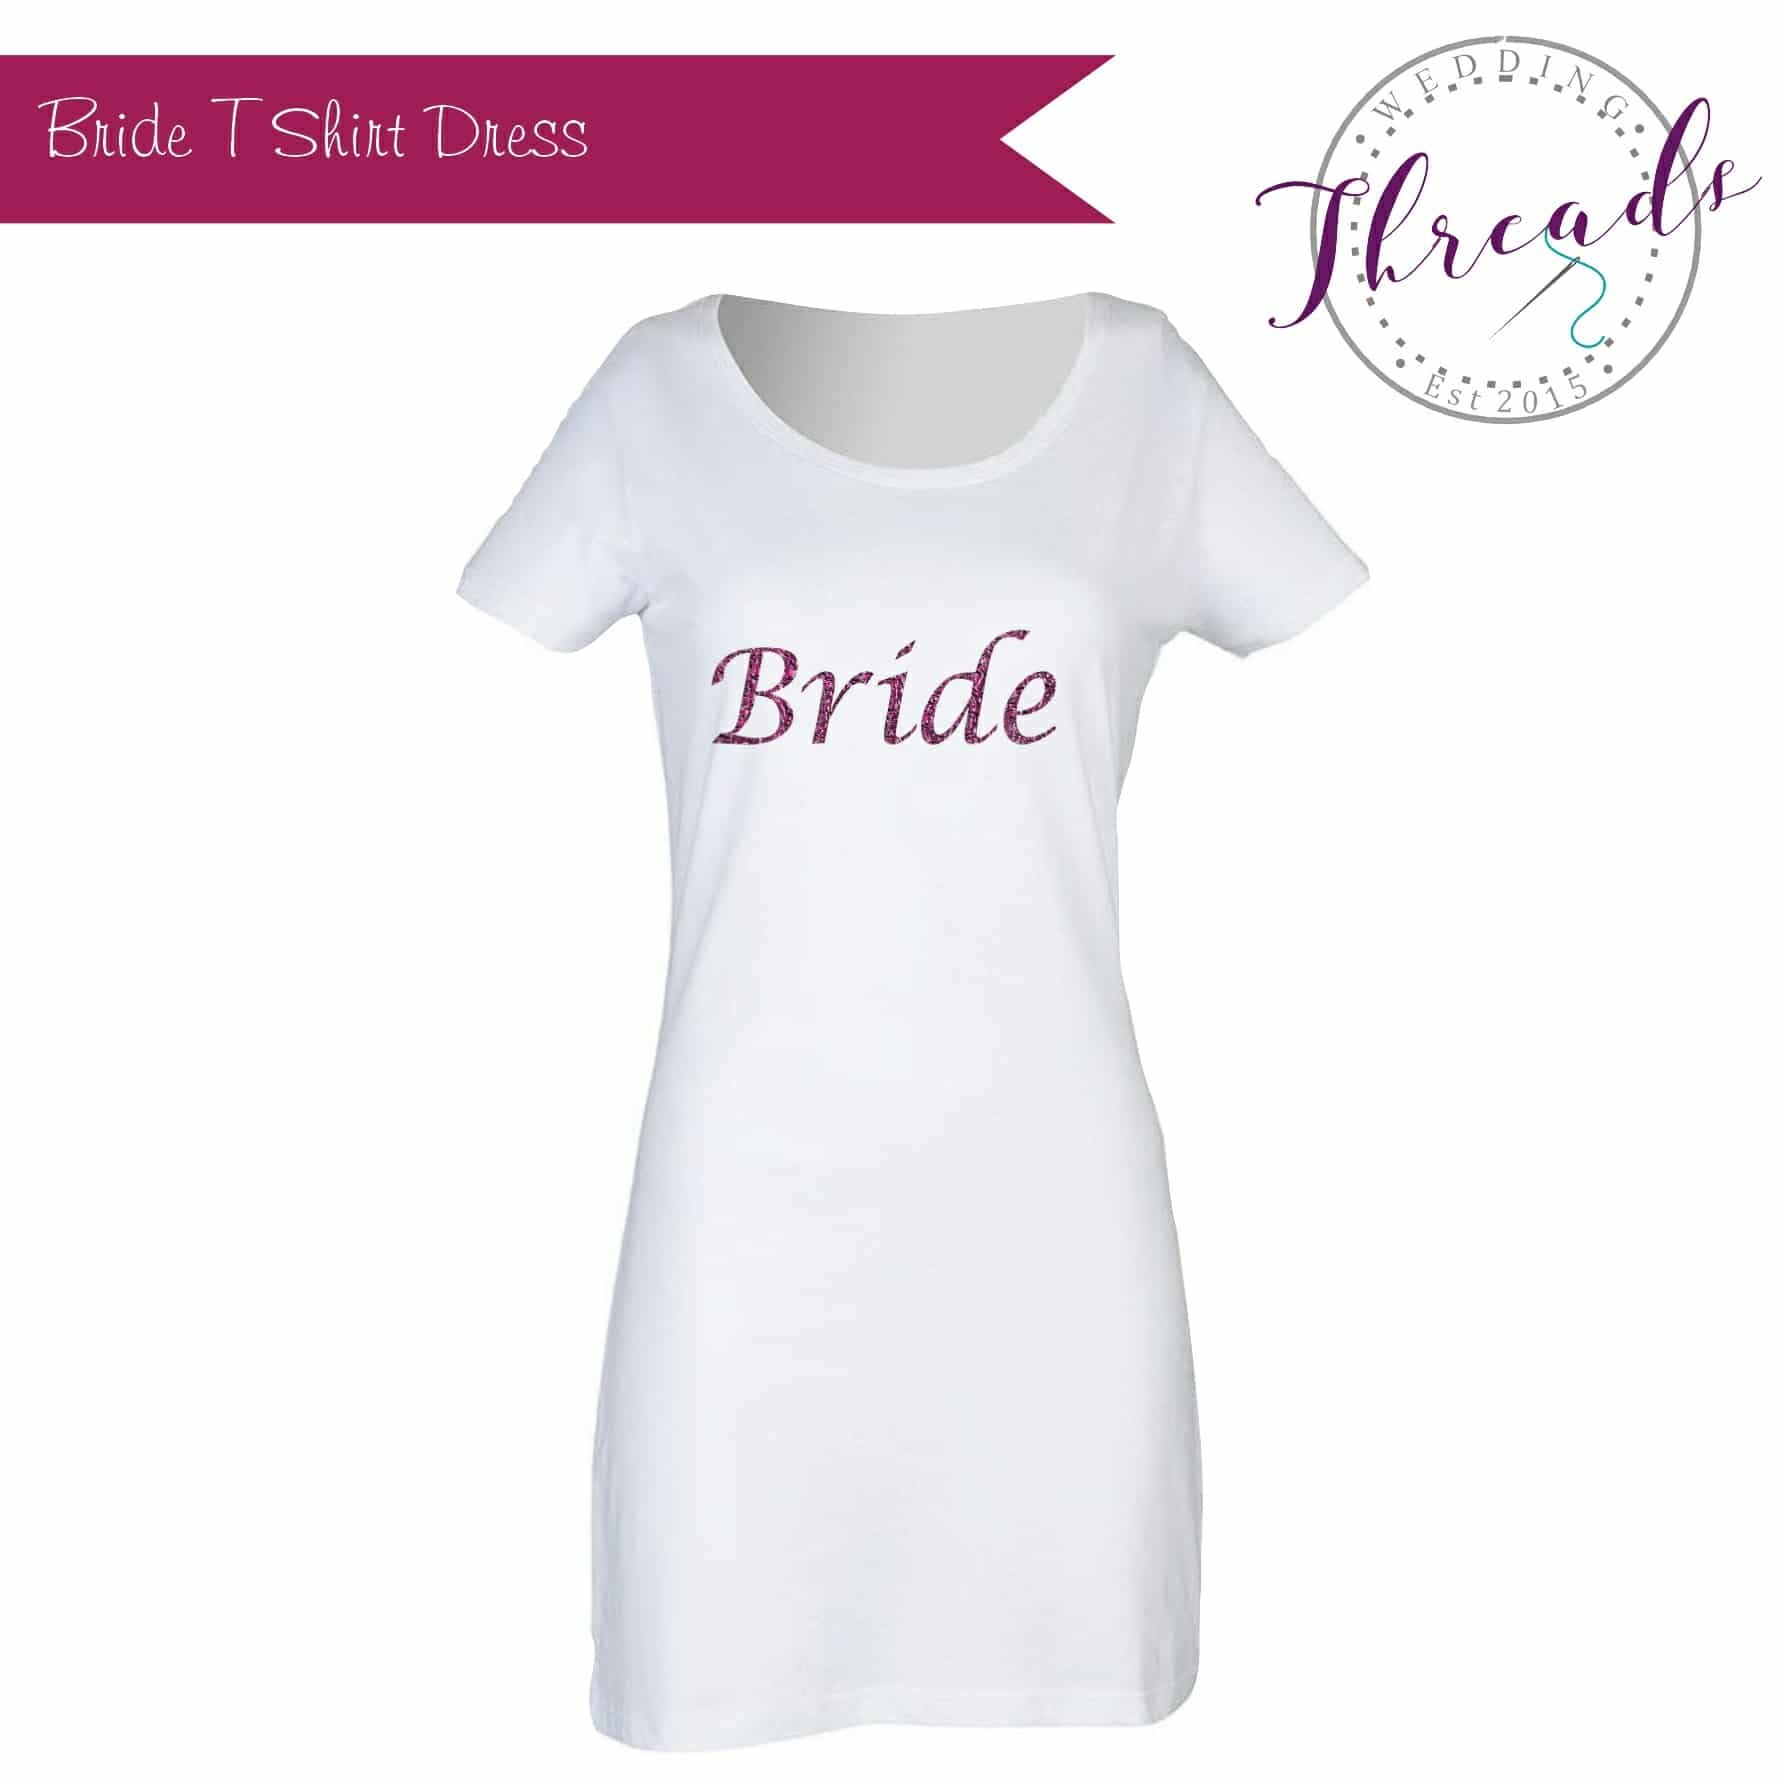 wedding tshirt dress